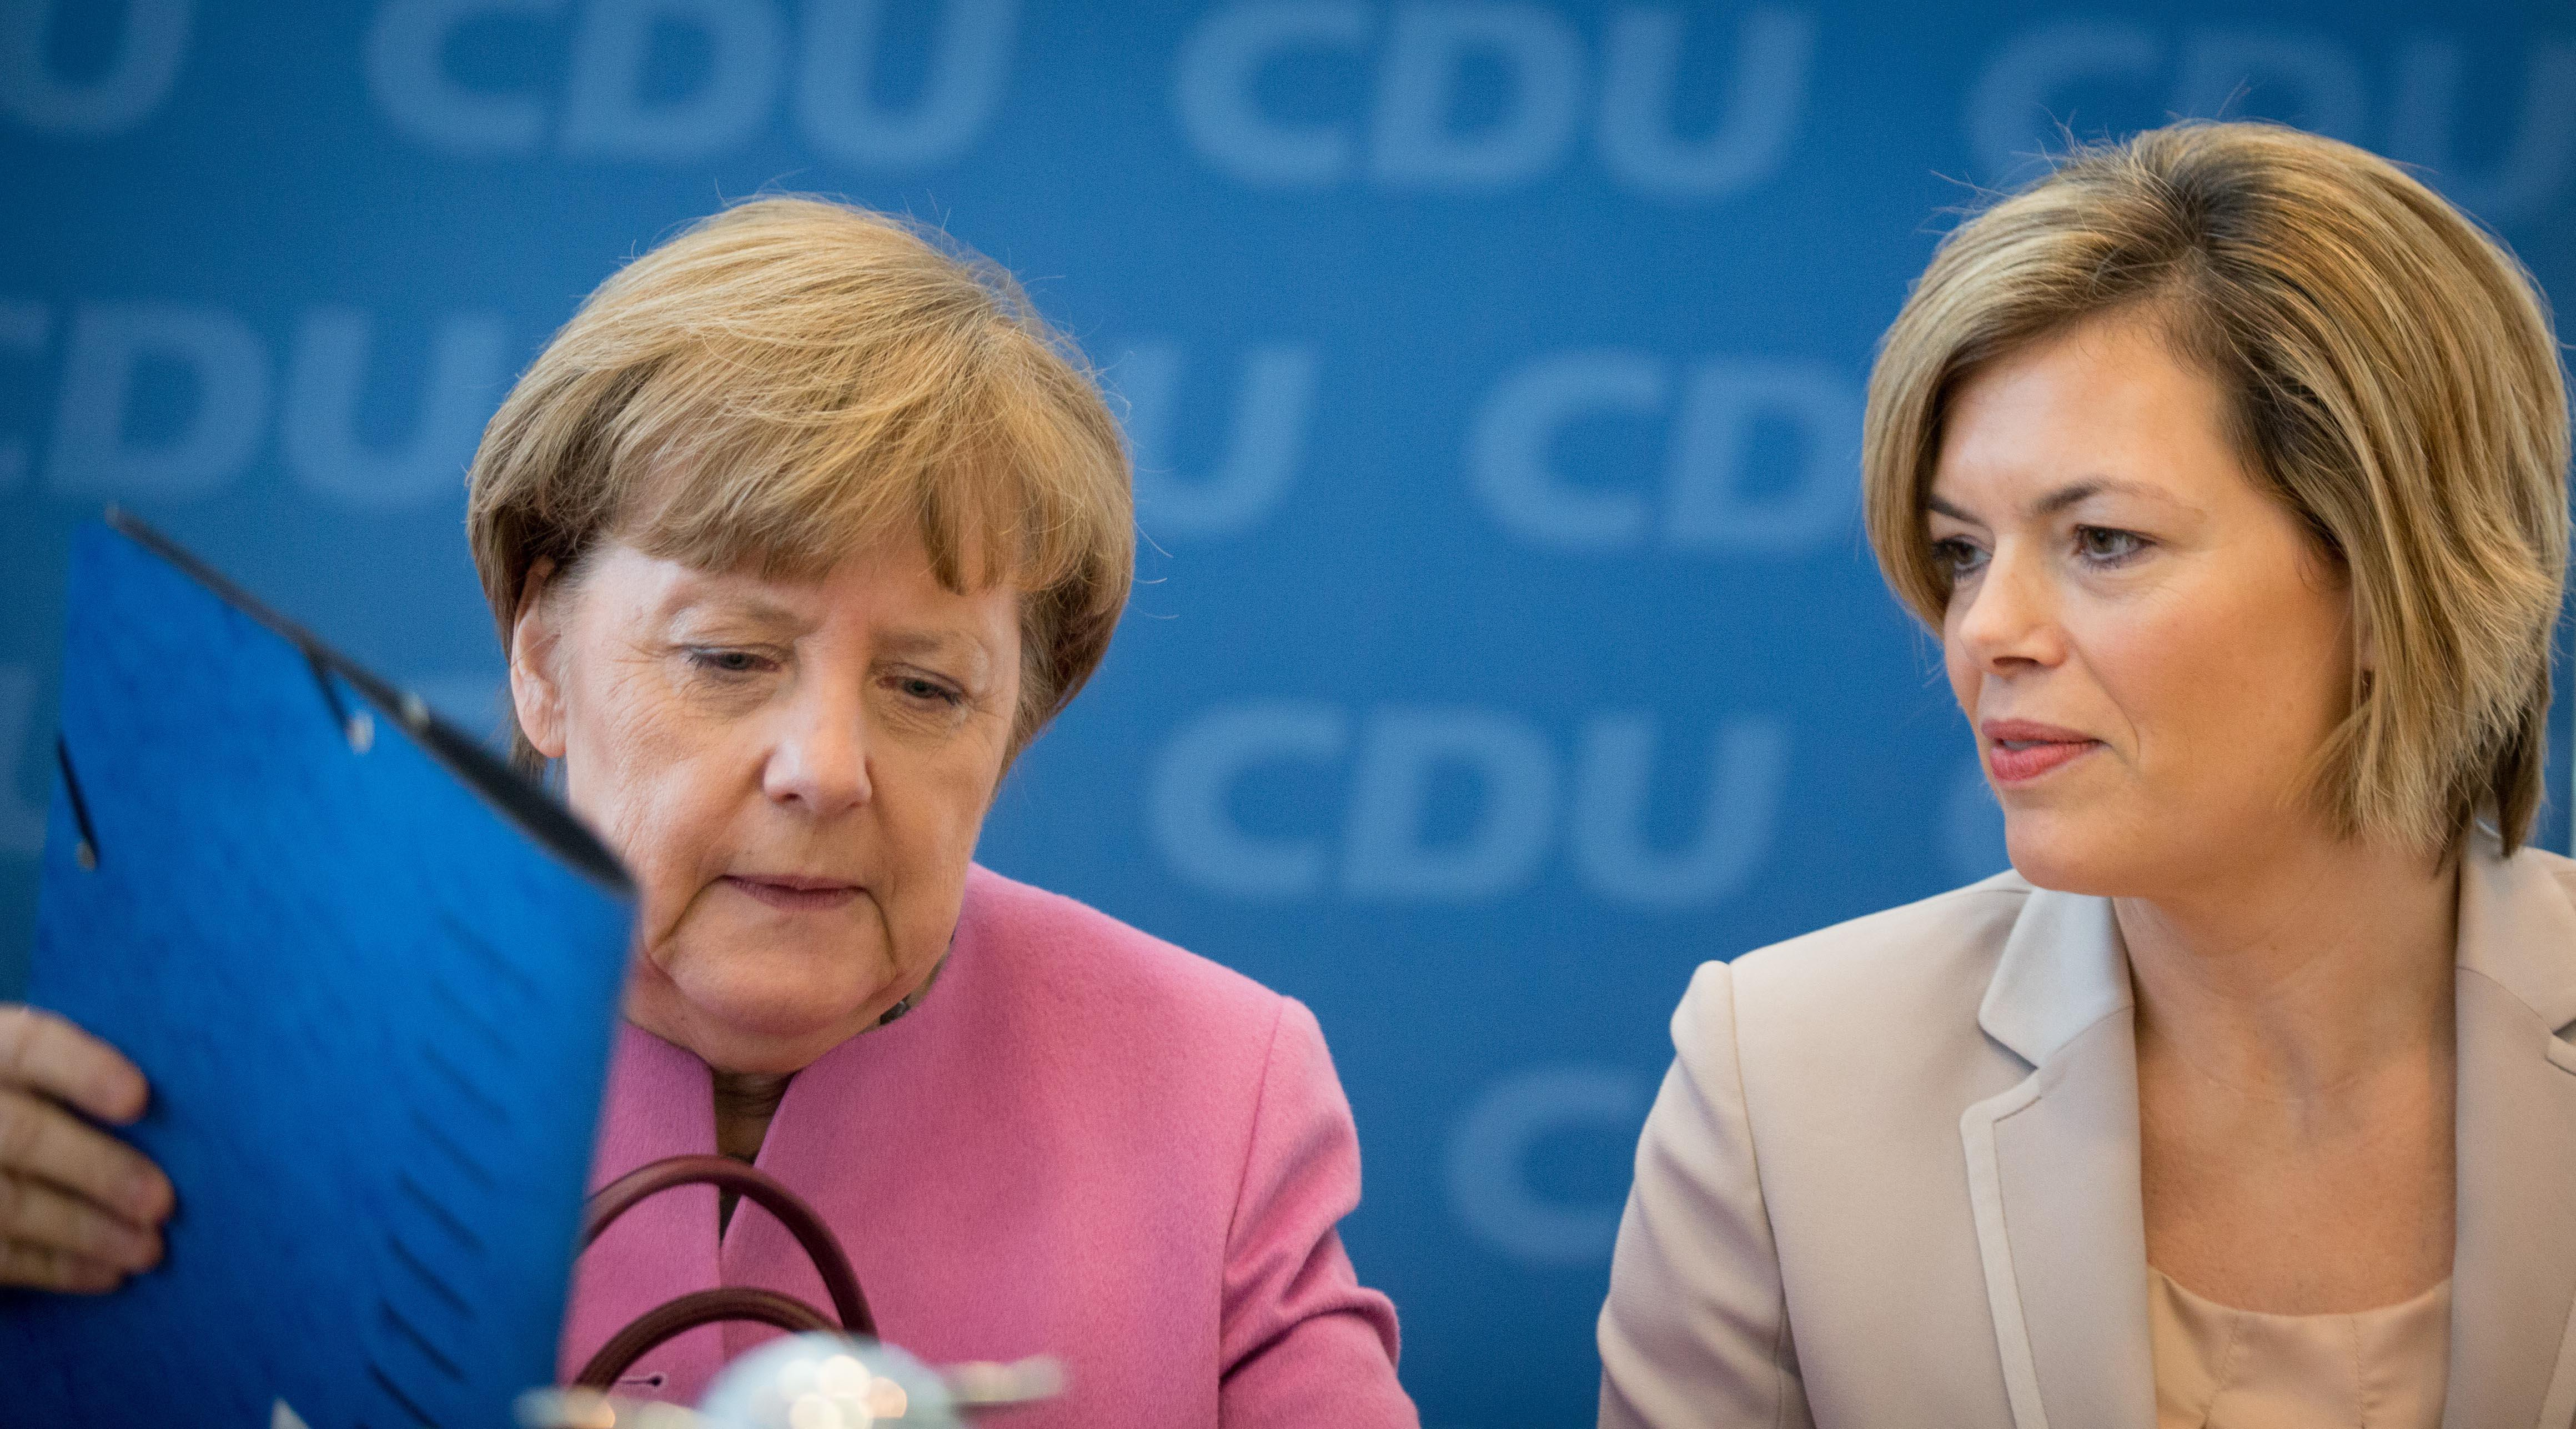 German election gives Syrians hope for future of homeland